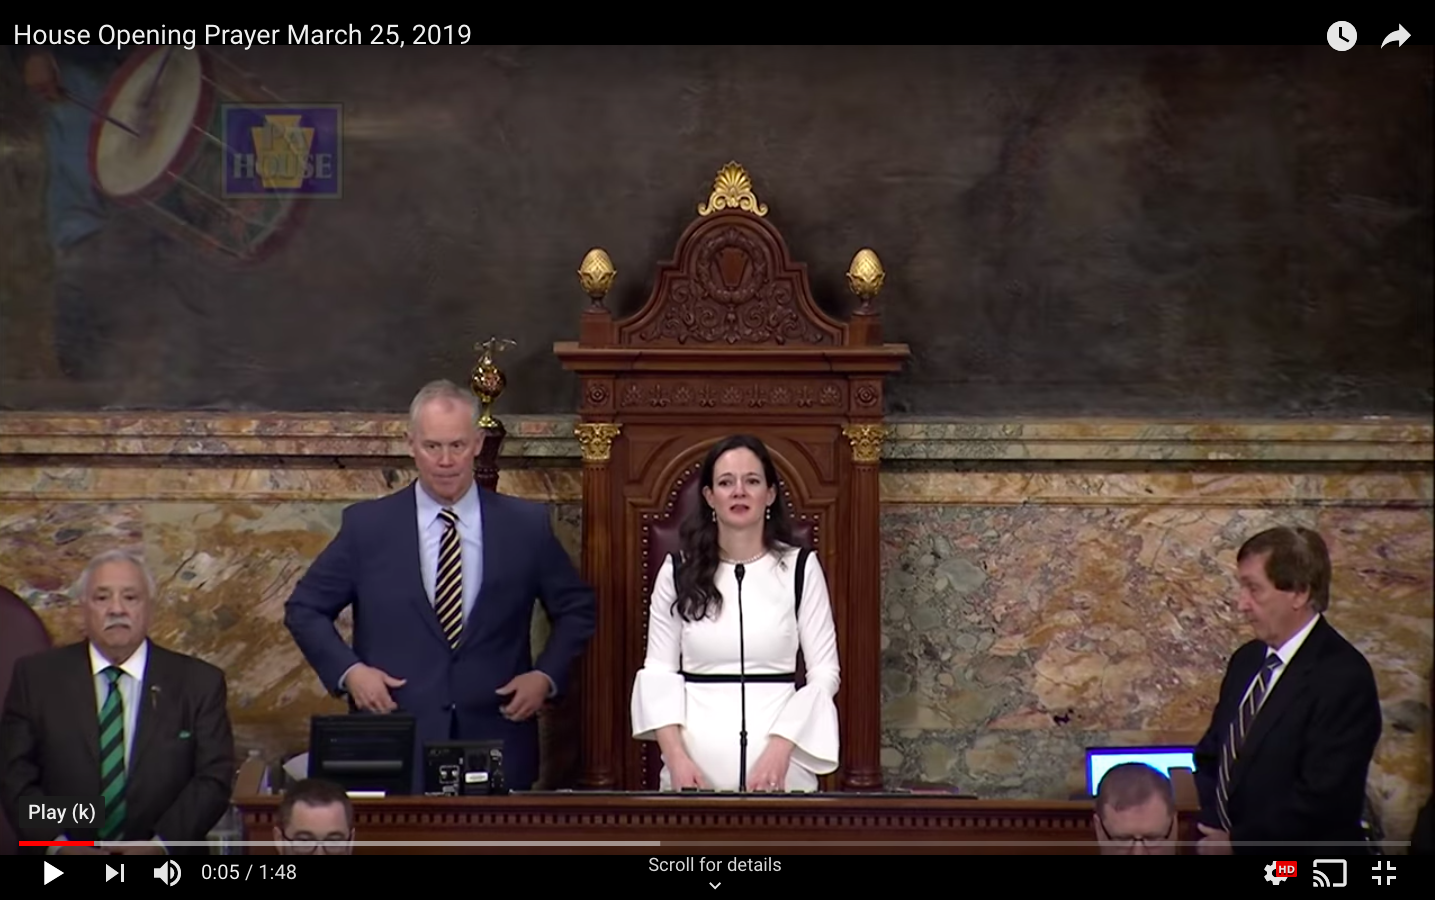 A still from the video of the prayer at the Statehouse.